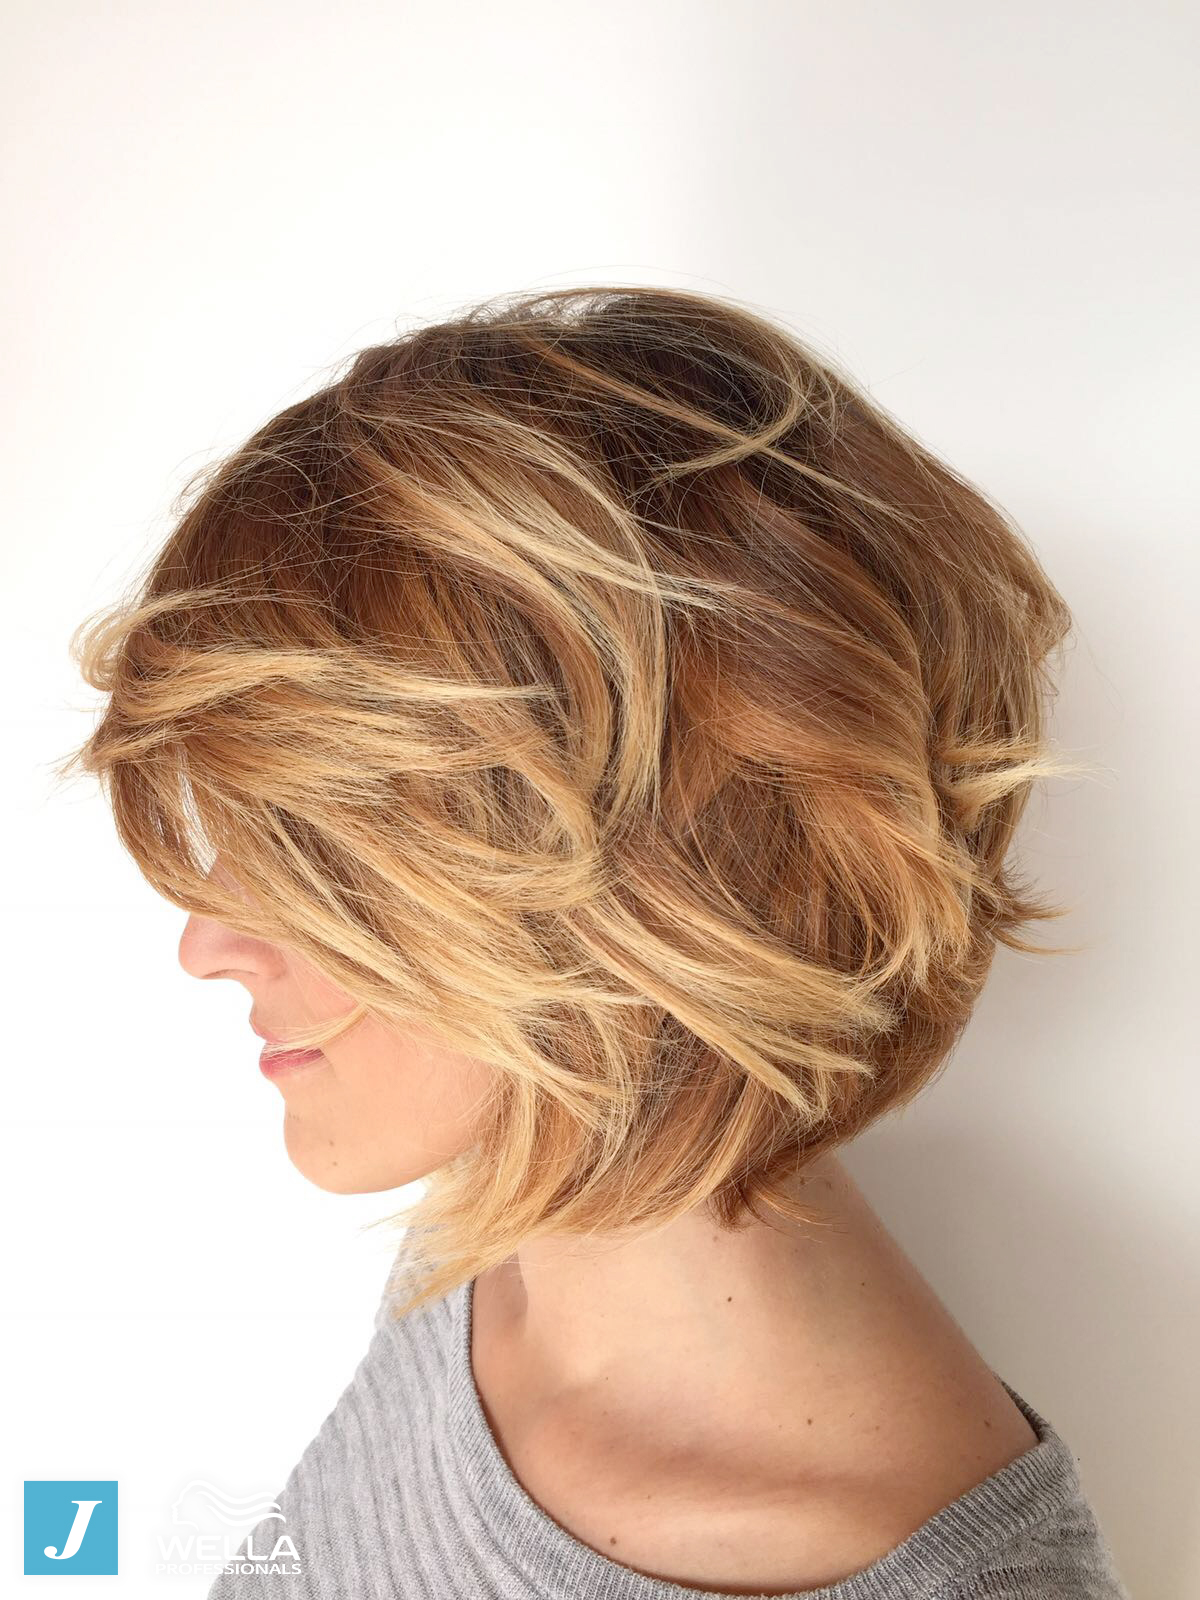 Create natural hair colors for your customers with Joelle Degradé ... e322d2dc7a2b